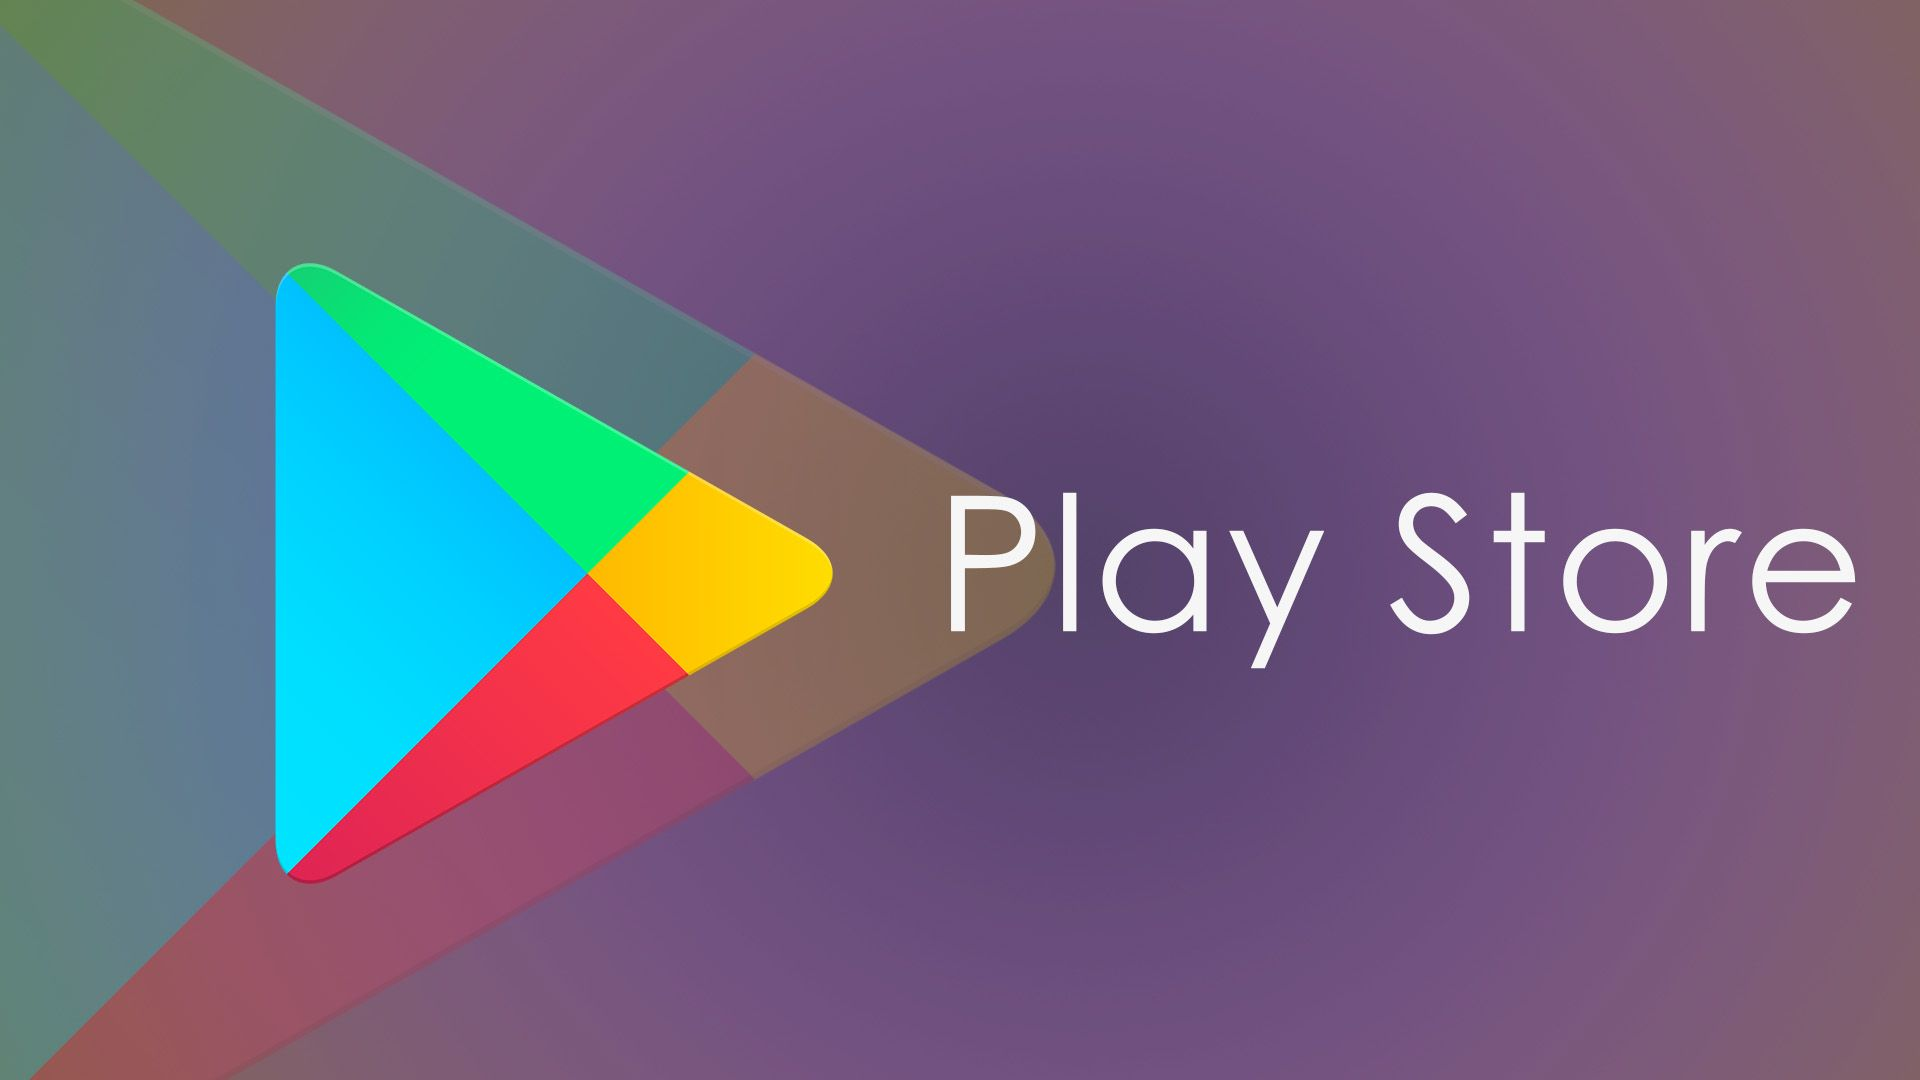 Play Store Wallpapers - Top Free Play Store Backgrounds ...